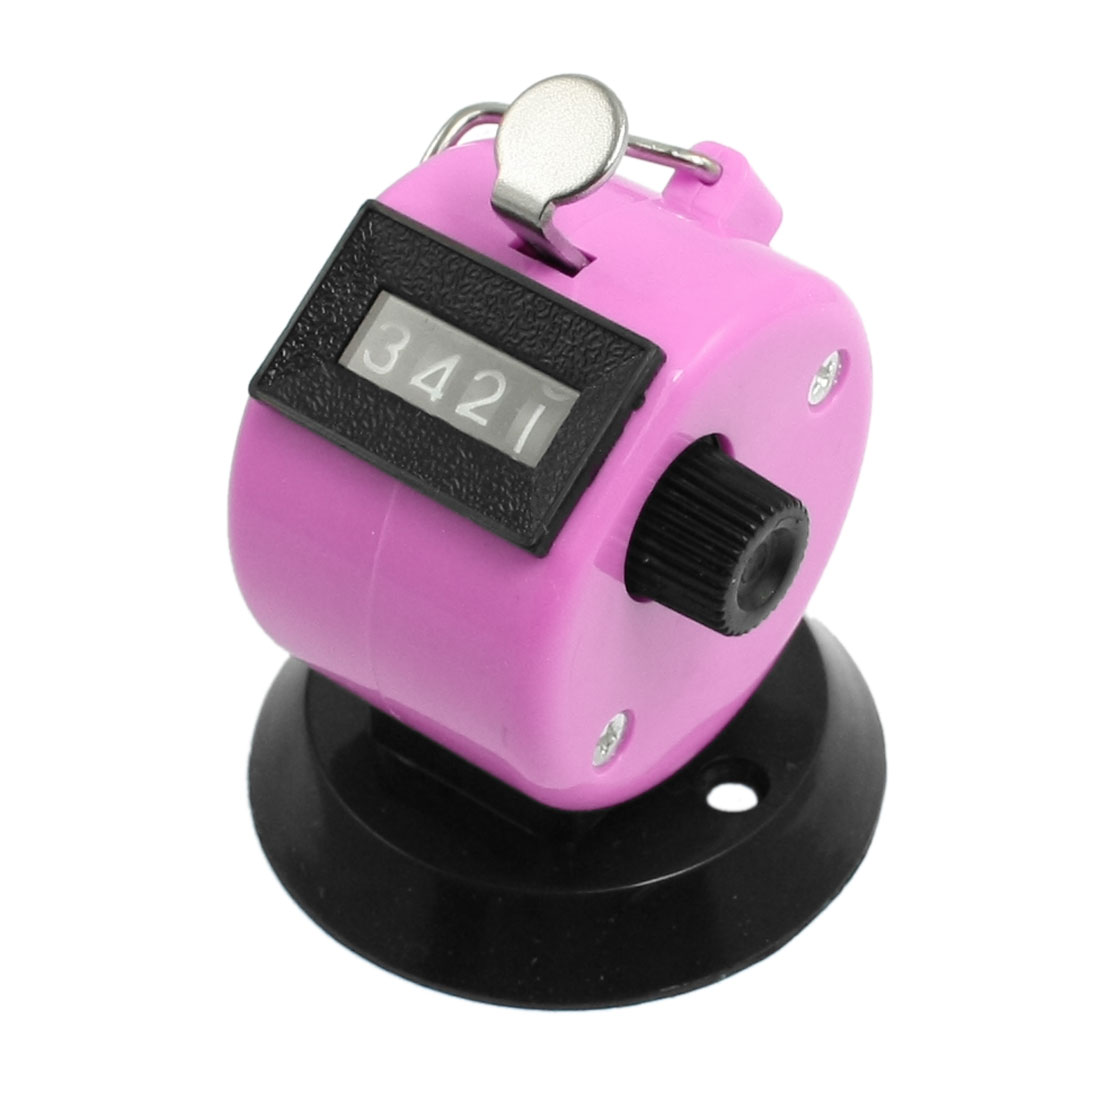 Unique Bargains Golf Pitch 4 Digit Number Clicker Handhold Tally Counter Black Pink